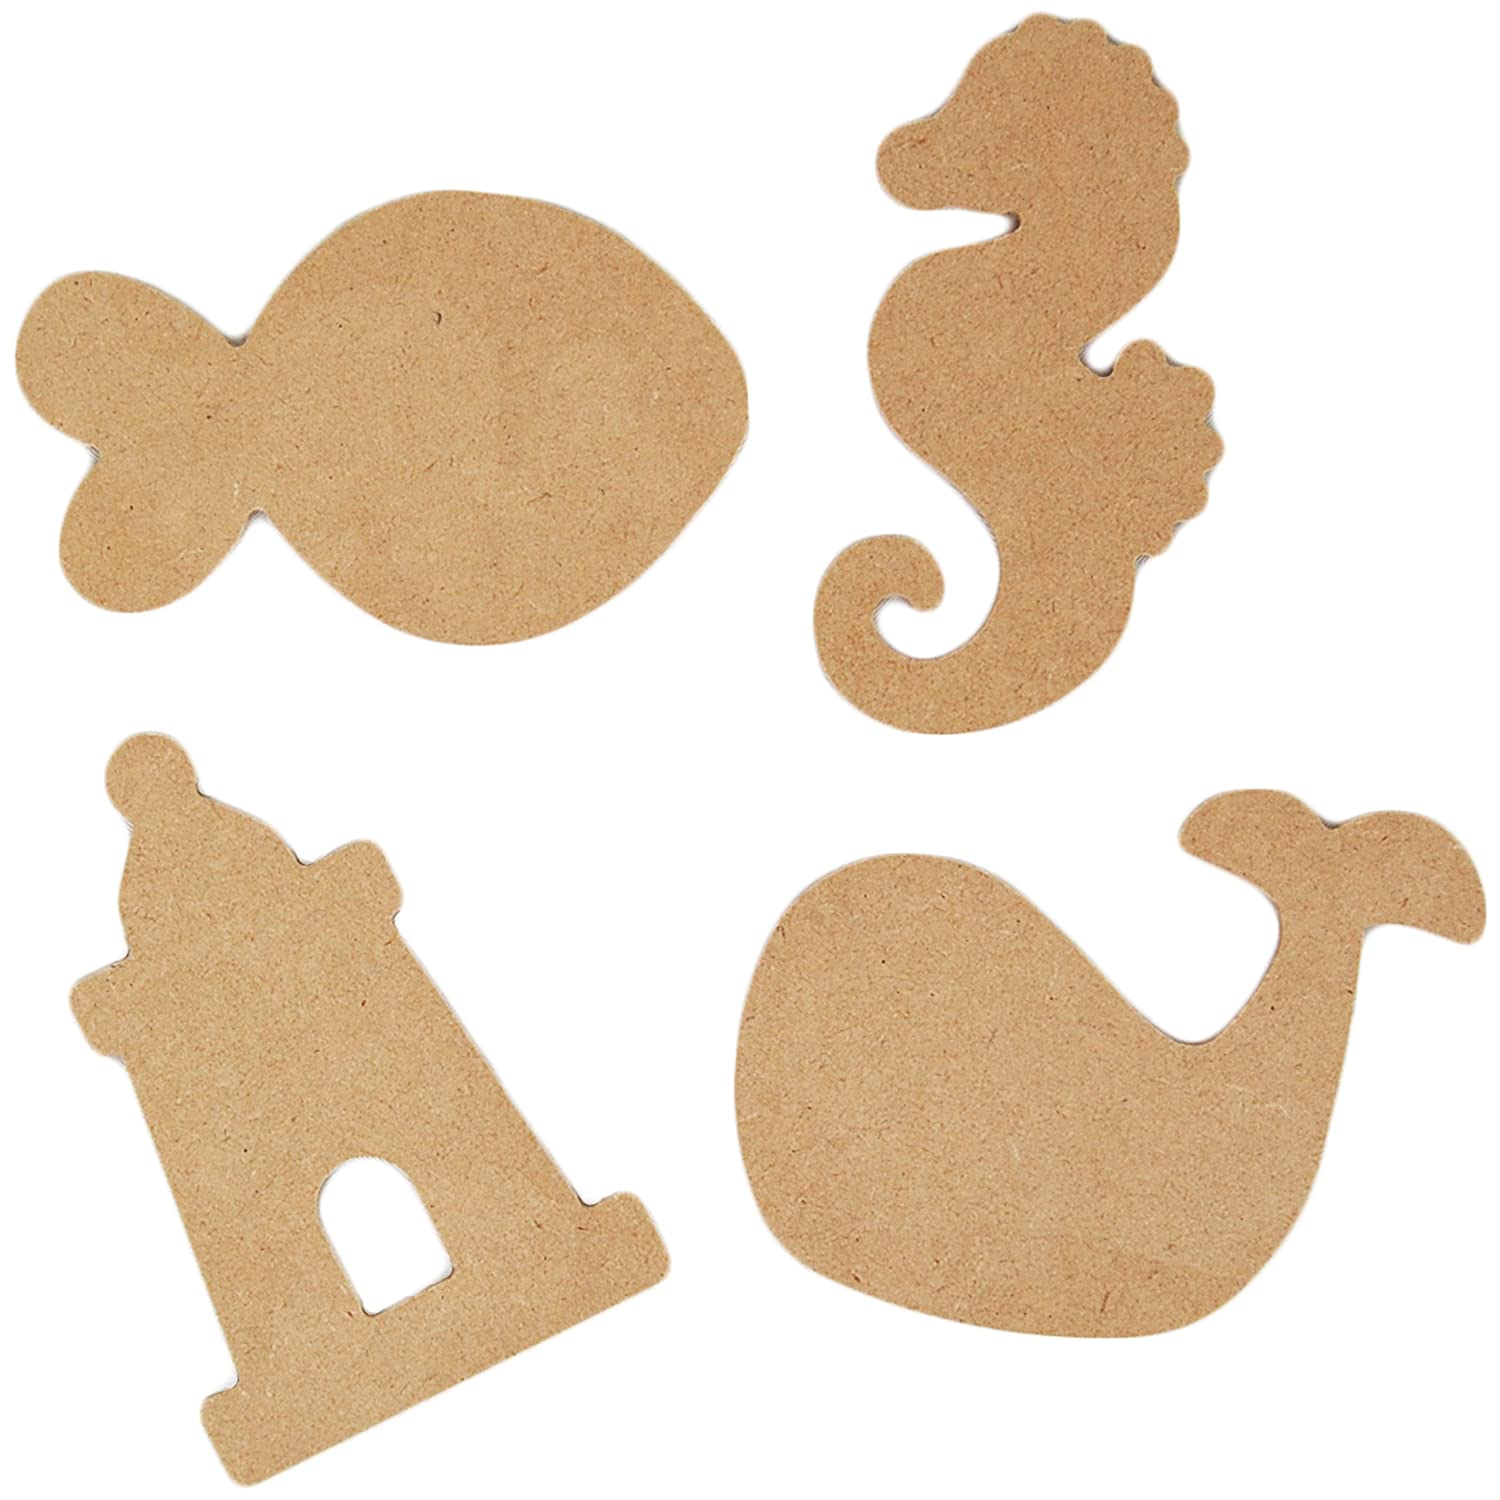 Country Love Crafts 4 Sea Life Themed Wooden Craft Blanks, Light Brown CLW0017